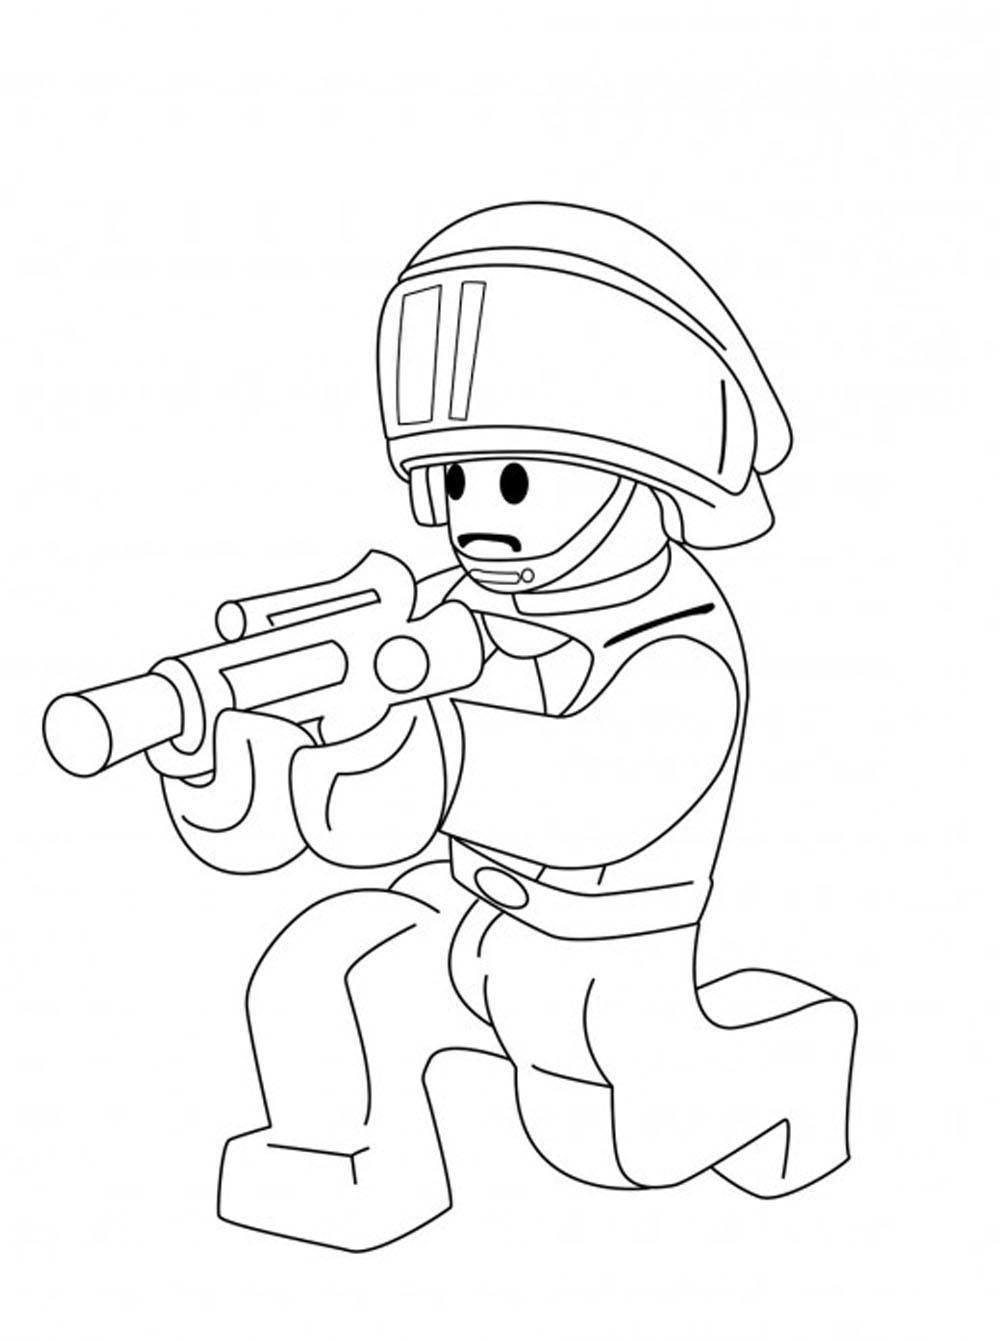 lego star wars coloring pages free printable | LineArt: Star Wars ...